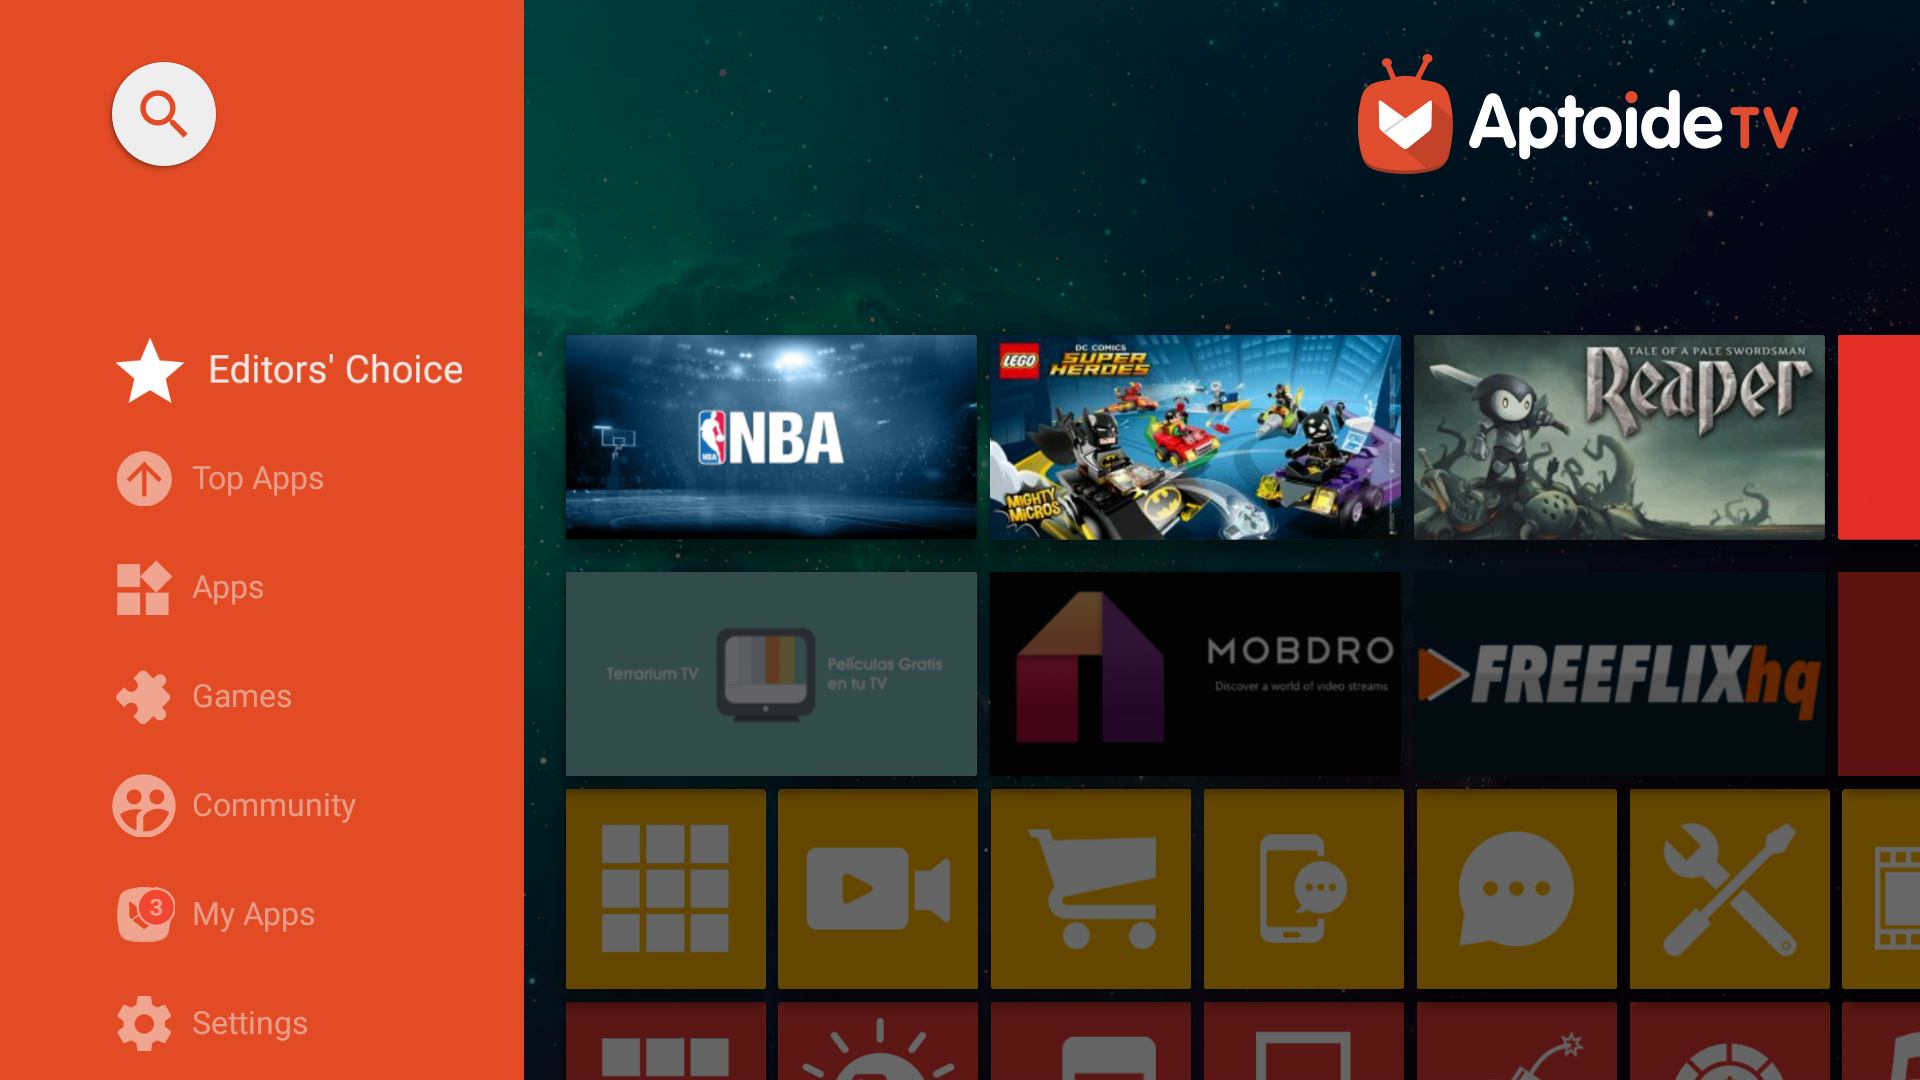 Aptoide TV 5.0.1 Screen 1